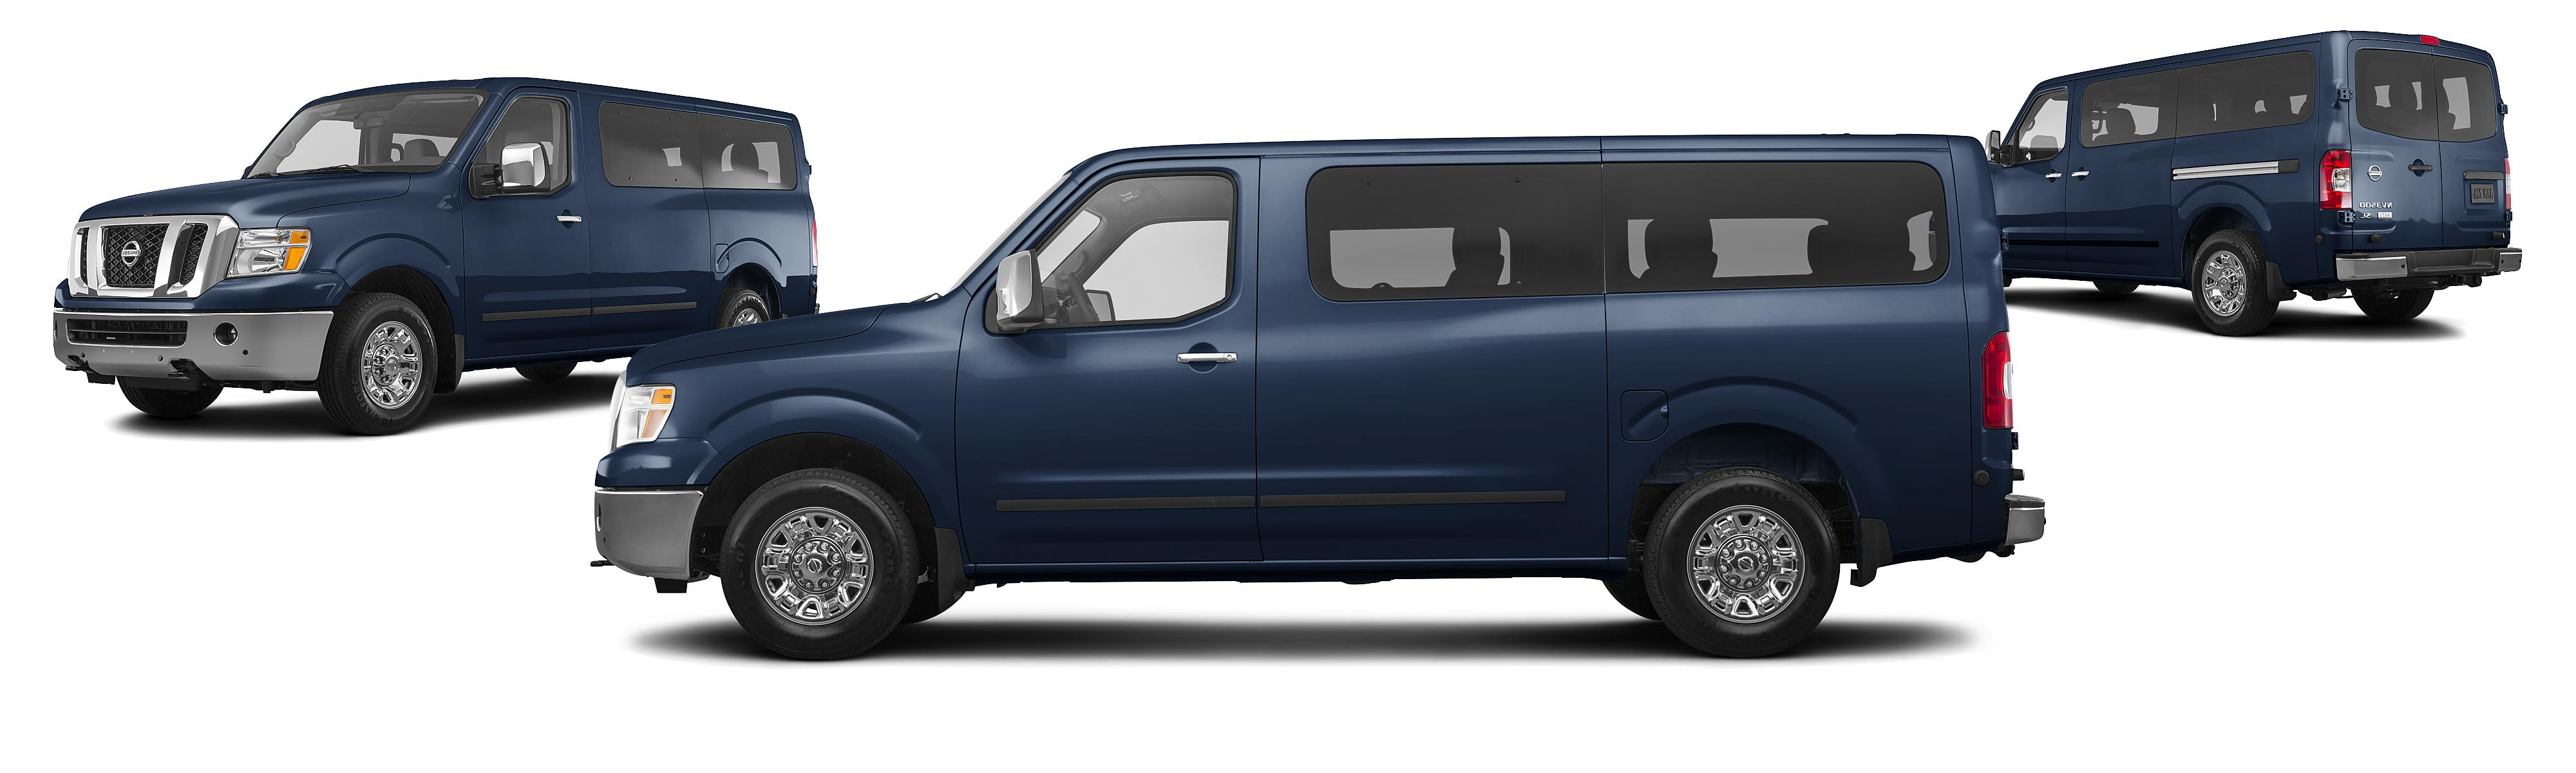 ak vehiclesearchresults sale for photo all fairbanks in vehicles nissan nv vehicle passenger